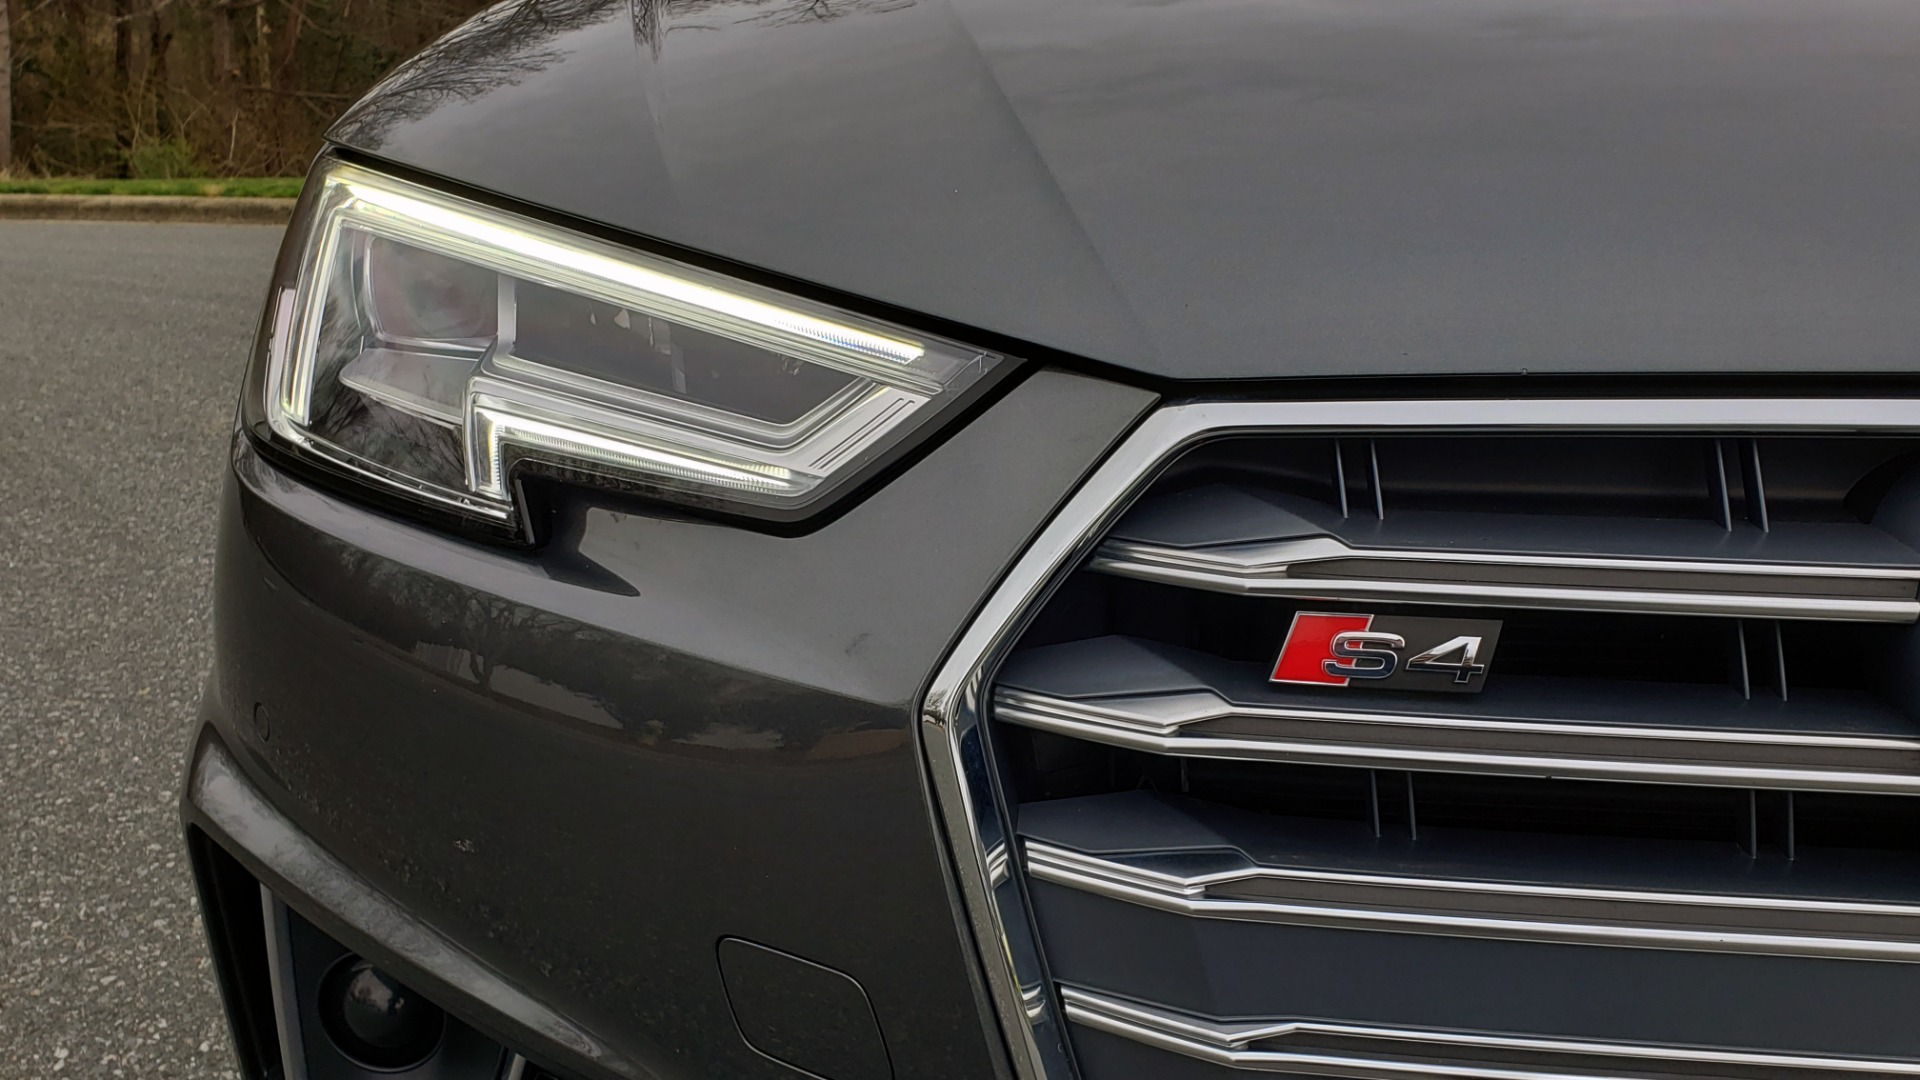 Used 2019 Audi S4 PREMIUM PLUS / AWD / NAV / SUNROOF / B&O SOUND / REARVIEW for sale Sold at Formula Imports in Charlotte NC 28227 21